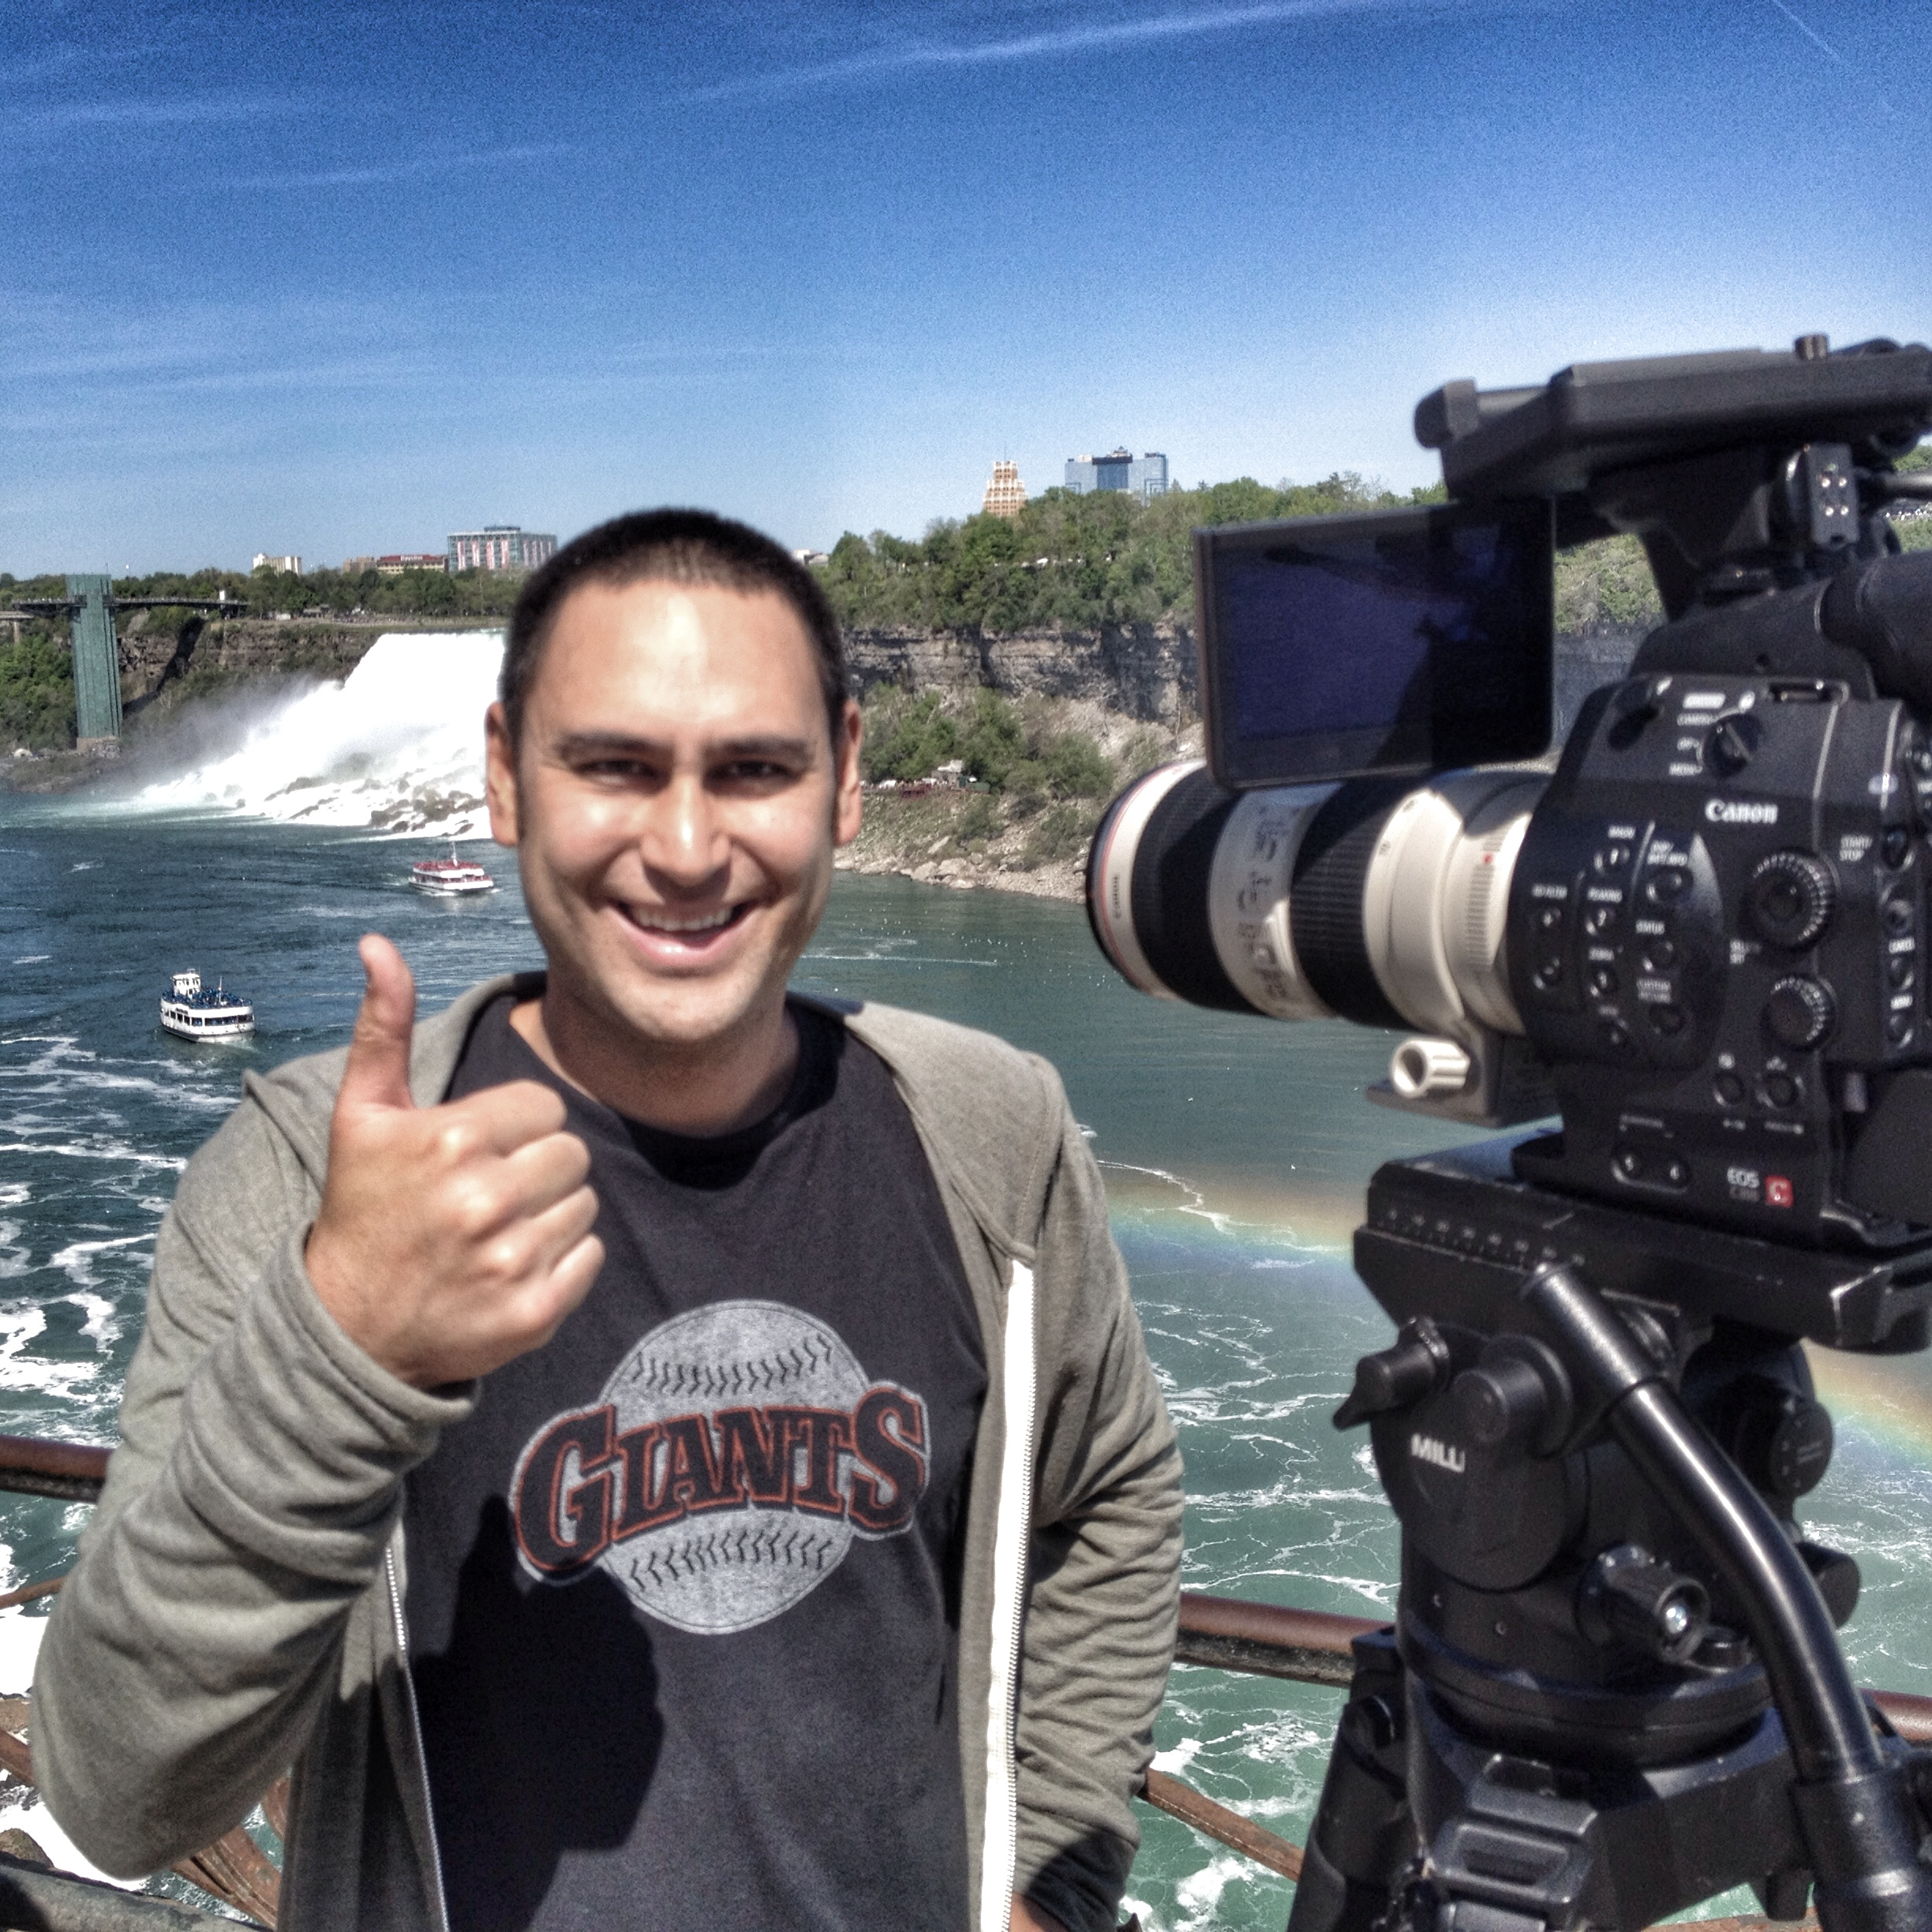 Jason at Niagra Falls just before re-entering the United States.